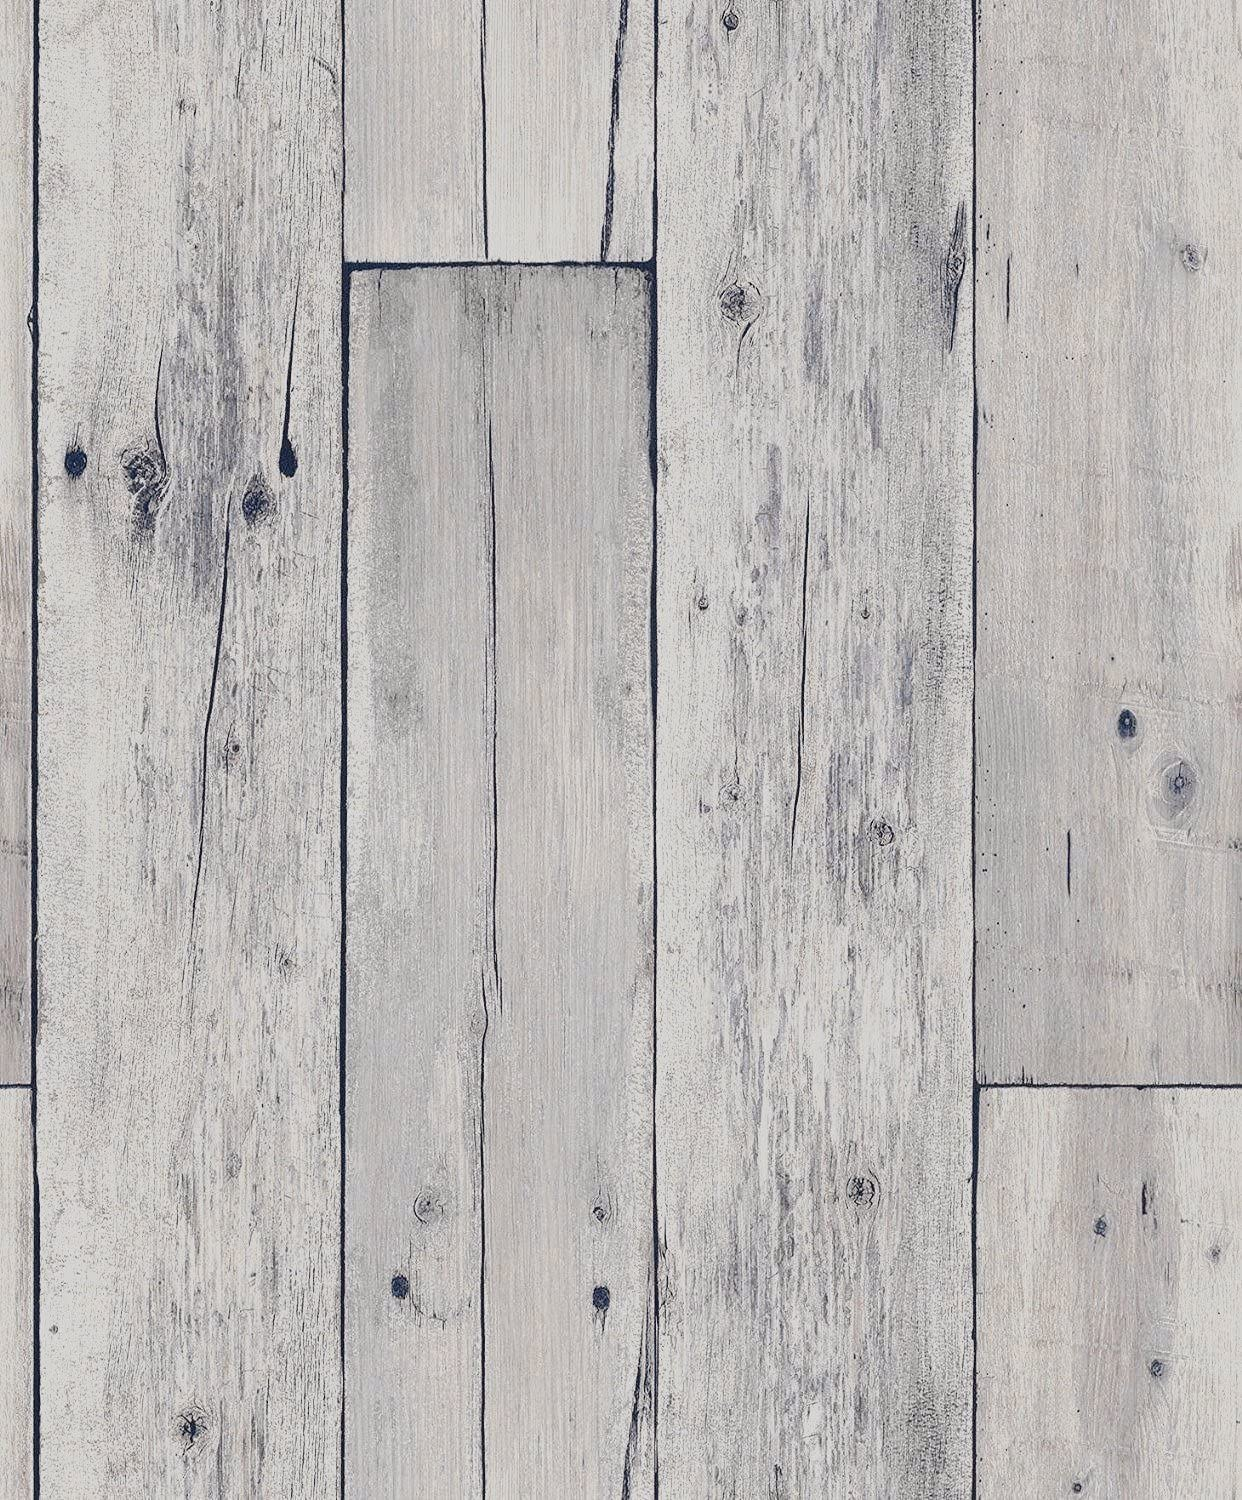 Blooming Wall: Faux Wooden Planks Wood Panel Wallpaper Wall Mural,20.8 In32.8 Ft=57 Sq Ft